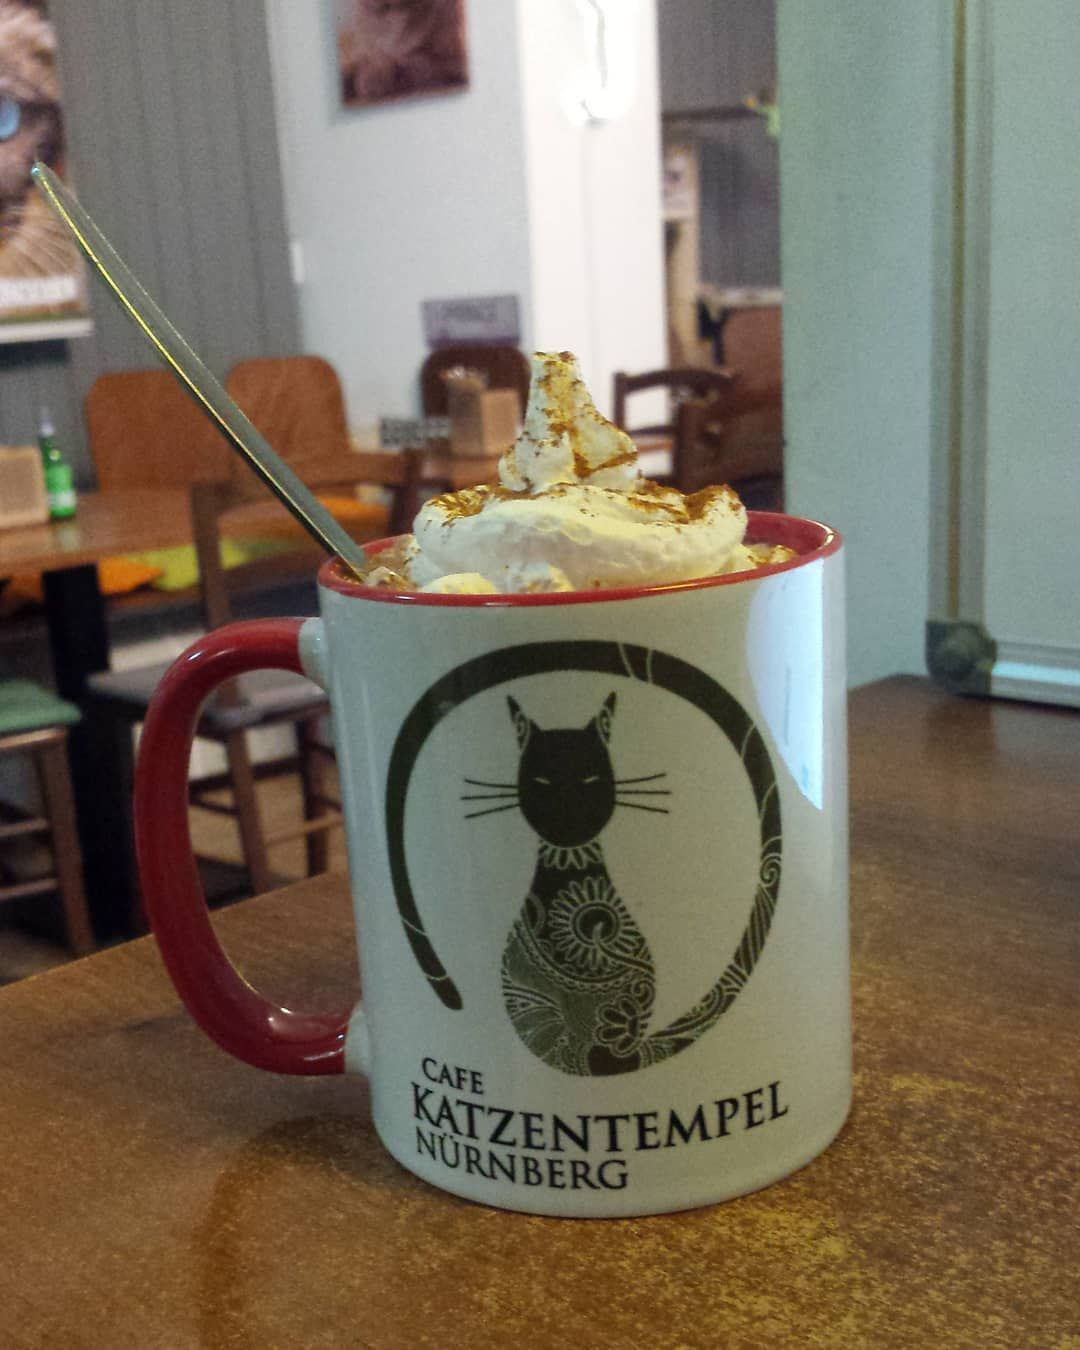 Don T Forget To Be Nourished During Work If You Like Cats Visit The Katzentempel In Nuernberg Cat Decor Diy Cute Cat Drawing Scared Cat